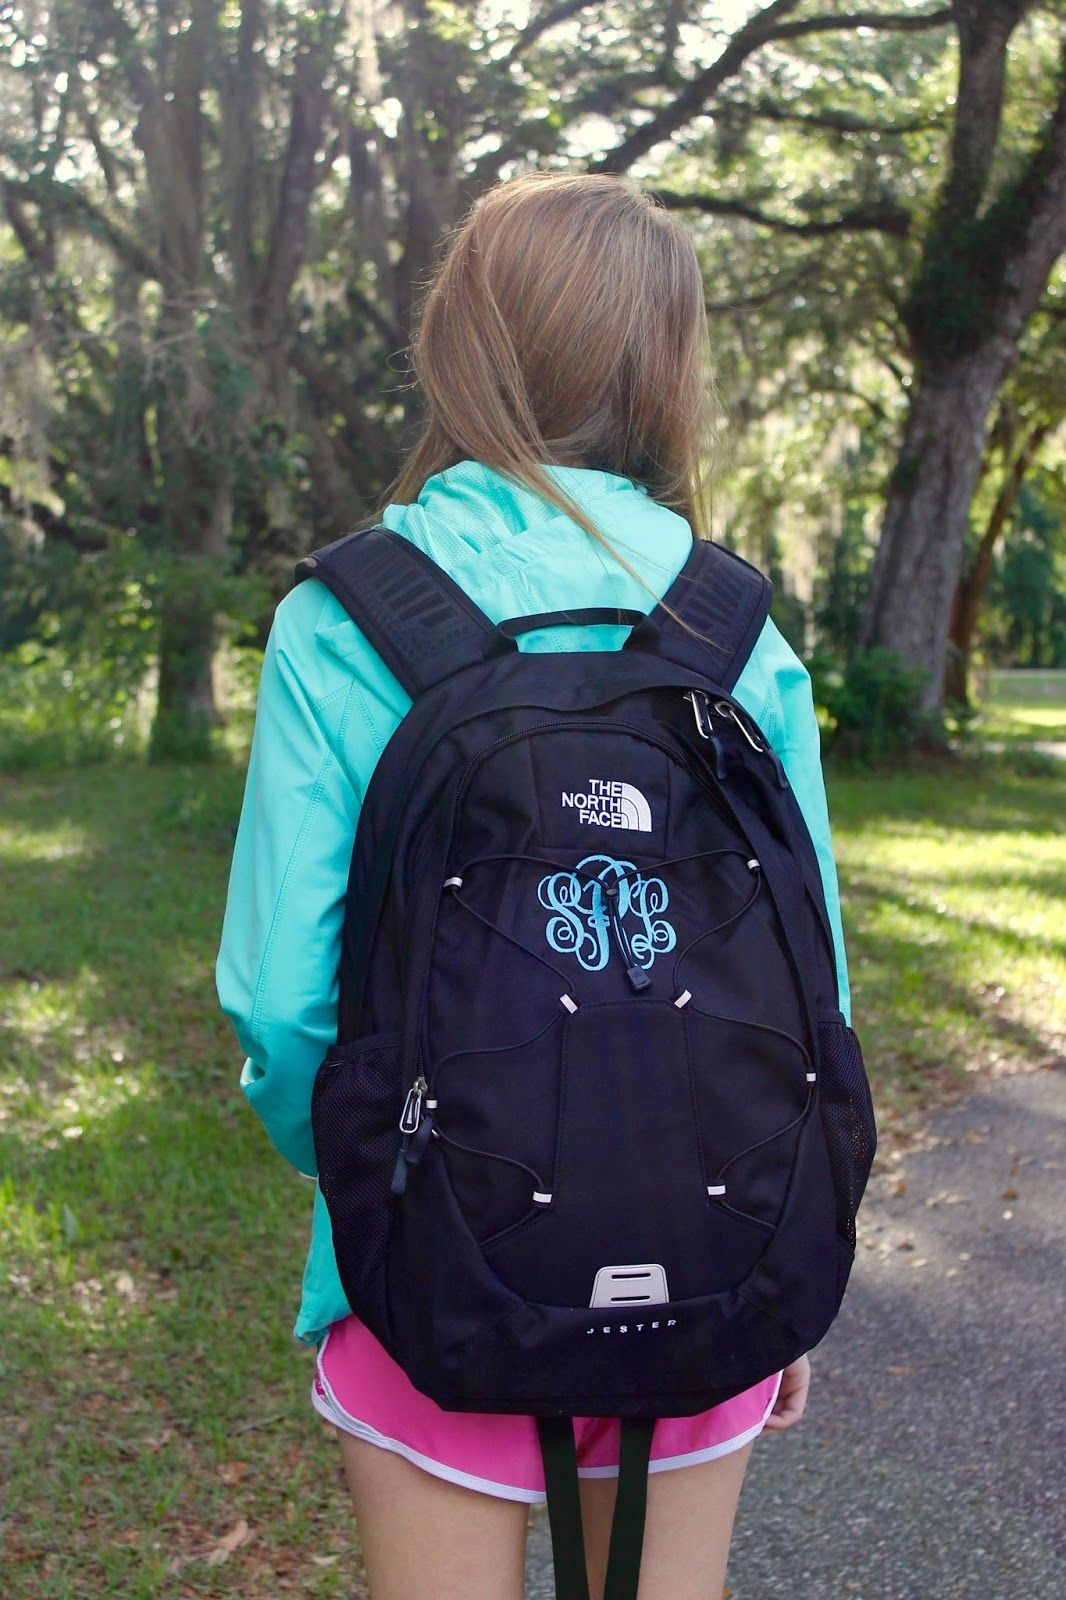 The North Face Women's Borealis | Bags, Hiking and Never